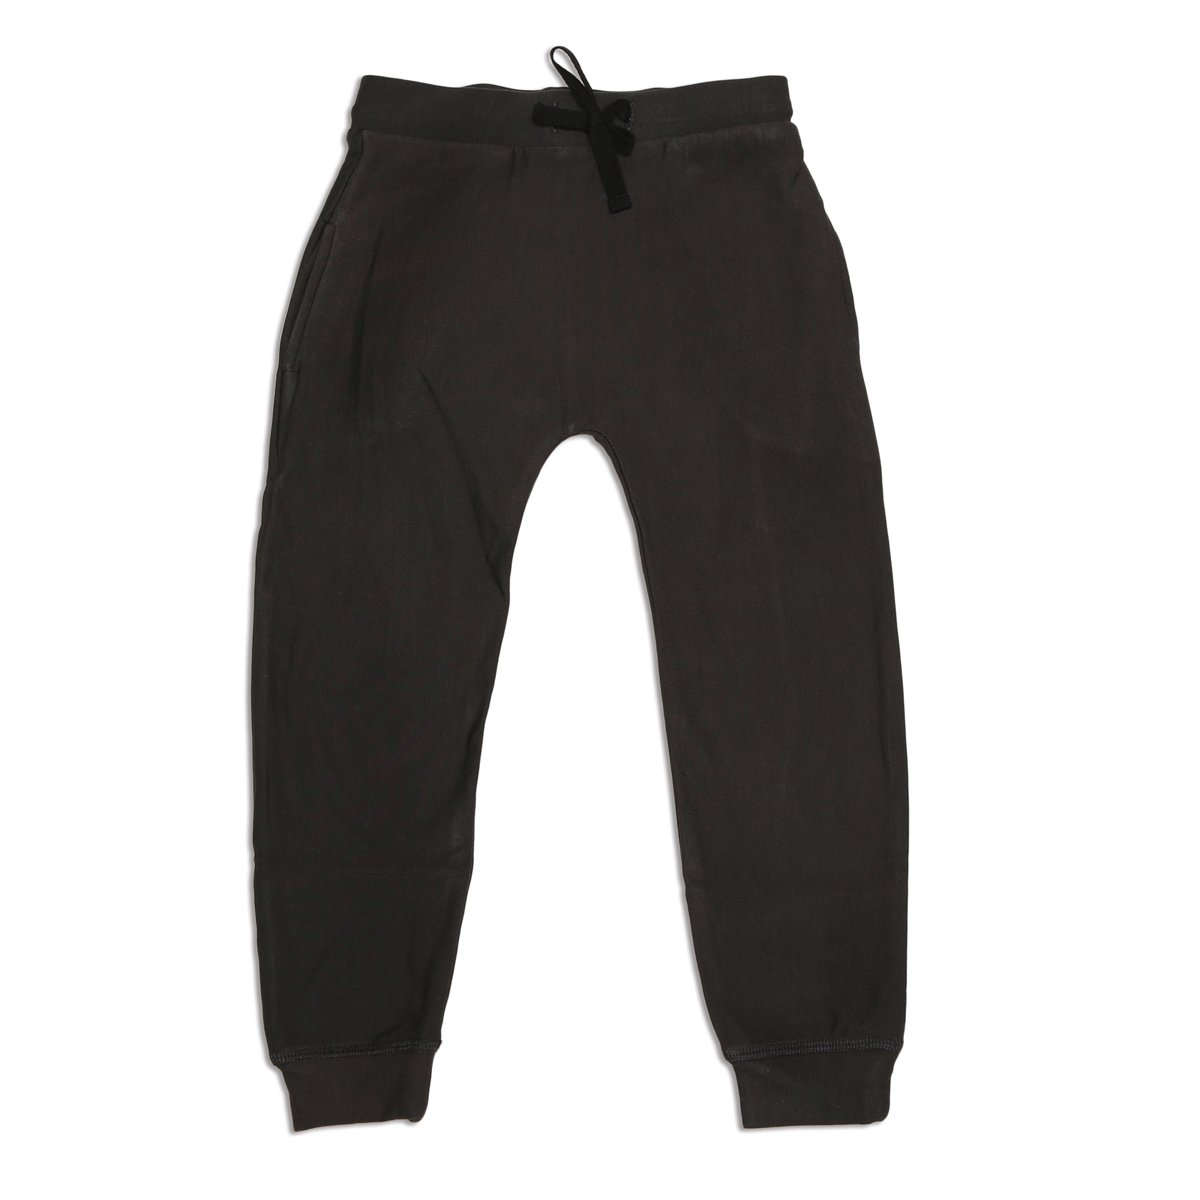 soft bamboo fleece harem pants black color